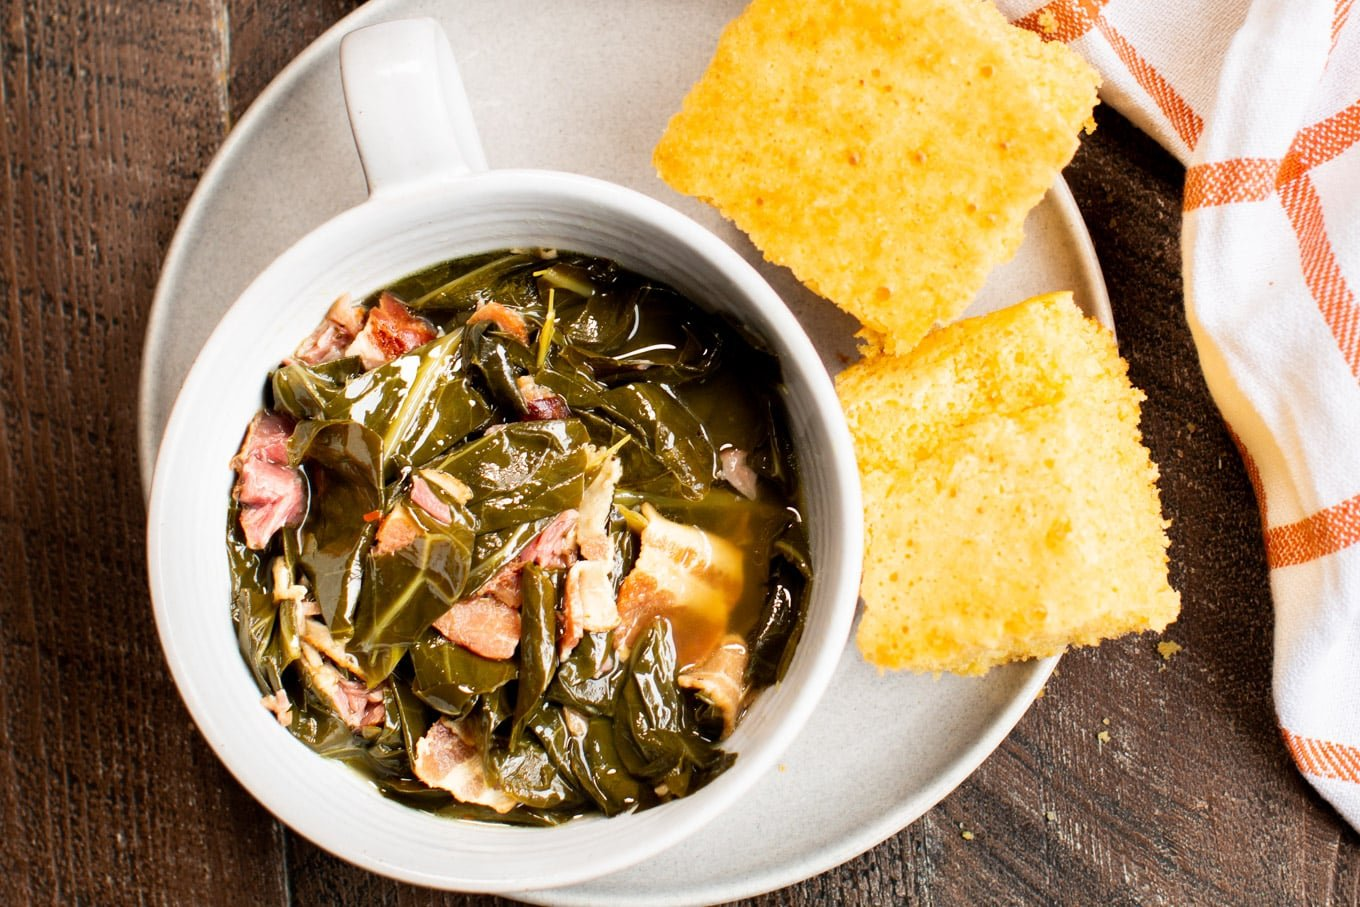 Collard green in bowl with cornbread on the side